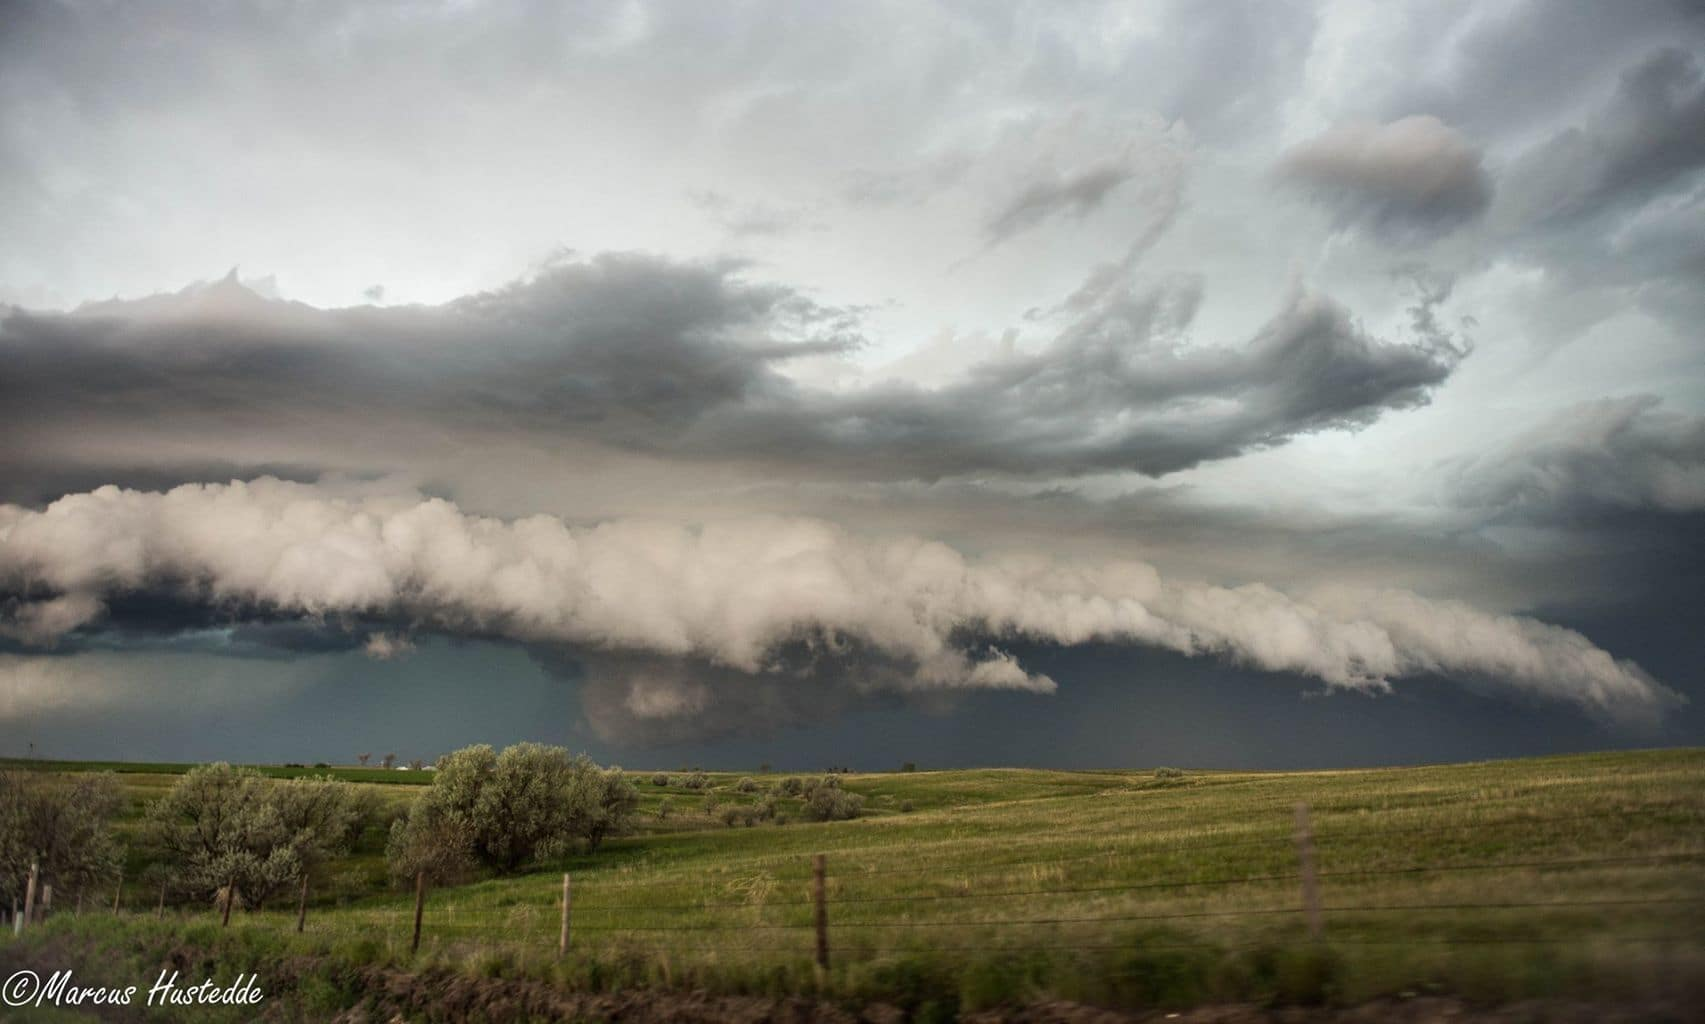 6-2-15 near Hemingford, NE....shelf cloud with an embedded wall cloud